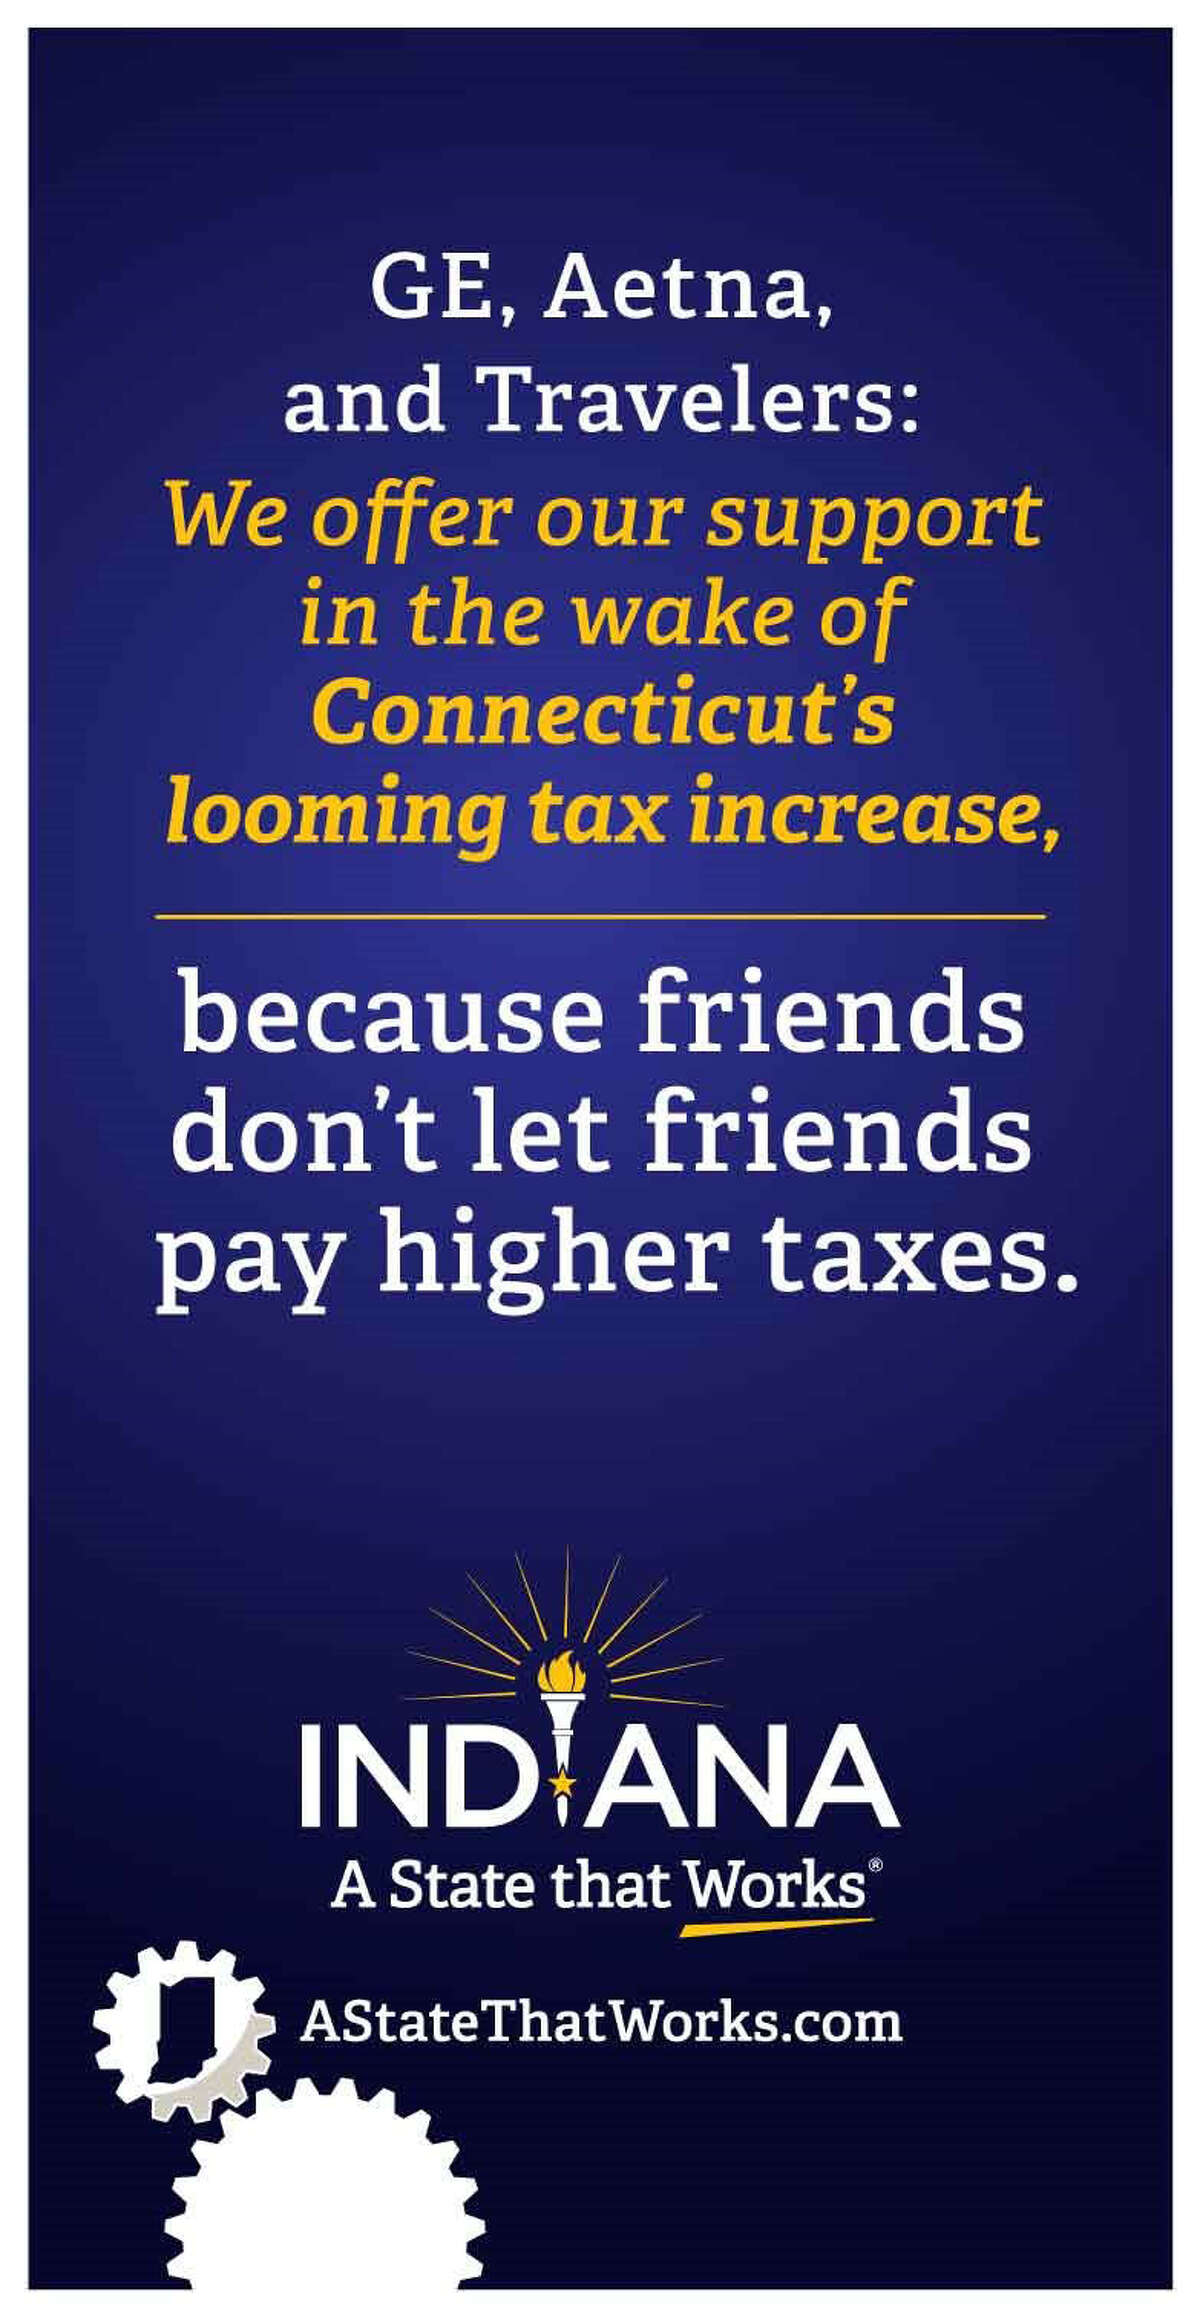 A full-page ad taken out by the state of Indiana in The Wall Street Journal on Wednesday is part of an effort by Indiana Gov. Mike Pence to pry businesses away from the home state of Connecticut rival Gov. Dannel P. Malloy.